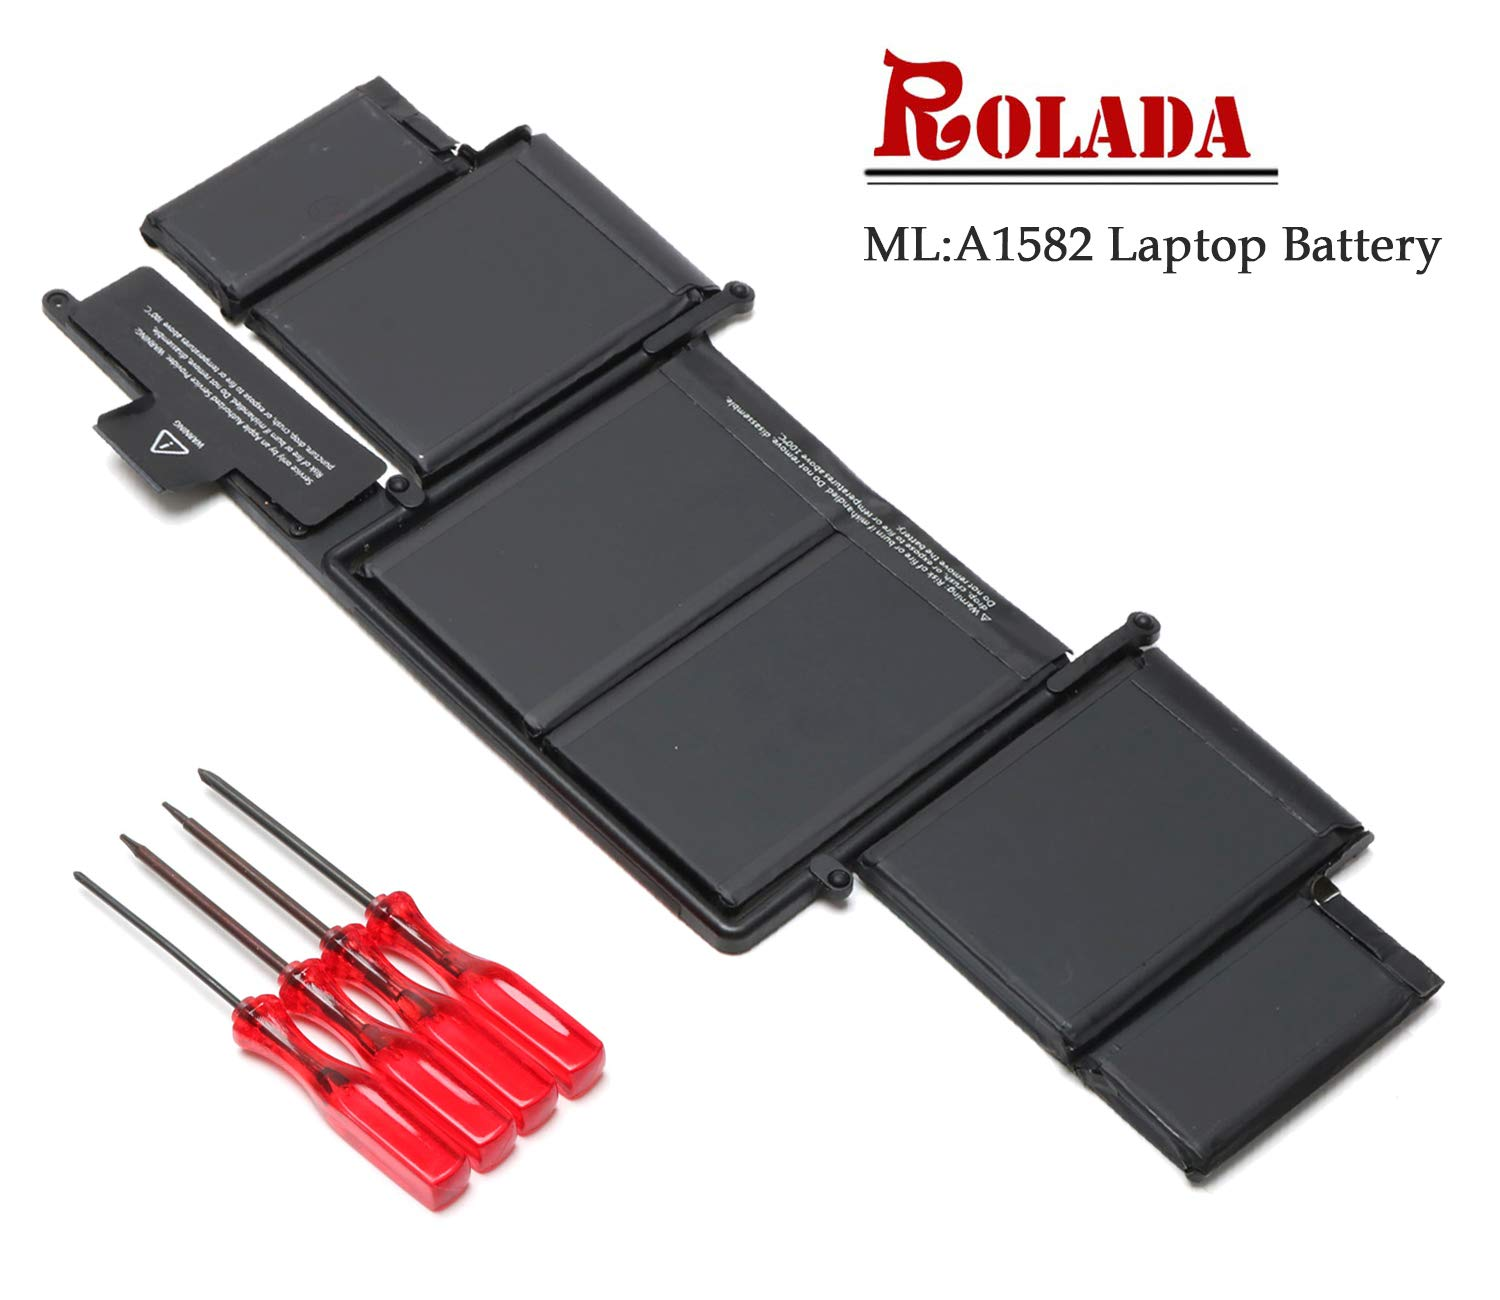 A1582 New Laptop Battery Replacement for 2015 MacBook Pro 13'' Retina A1502, ME864 ME865 MF839 MF840 MF841;MacBook A1493(Late 2013, Mid 2014 Version)